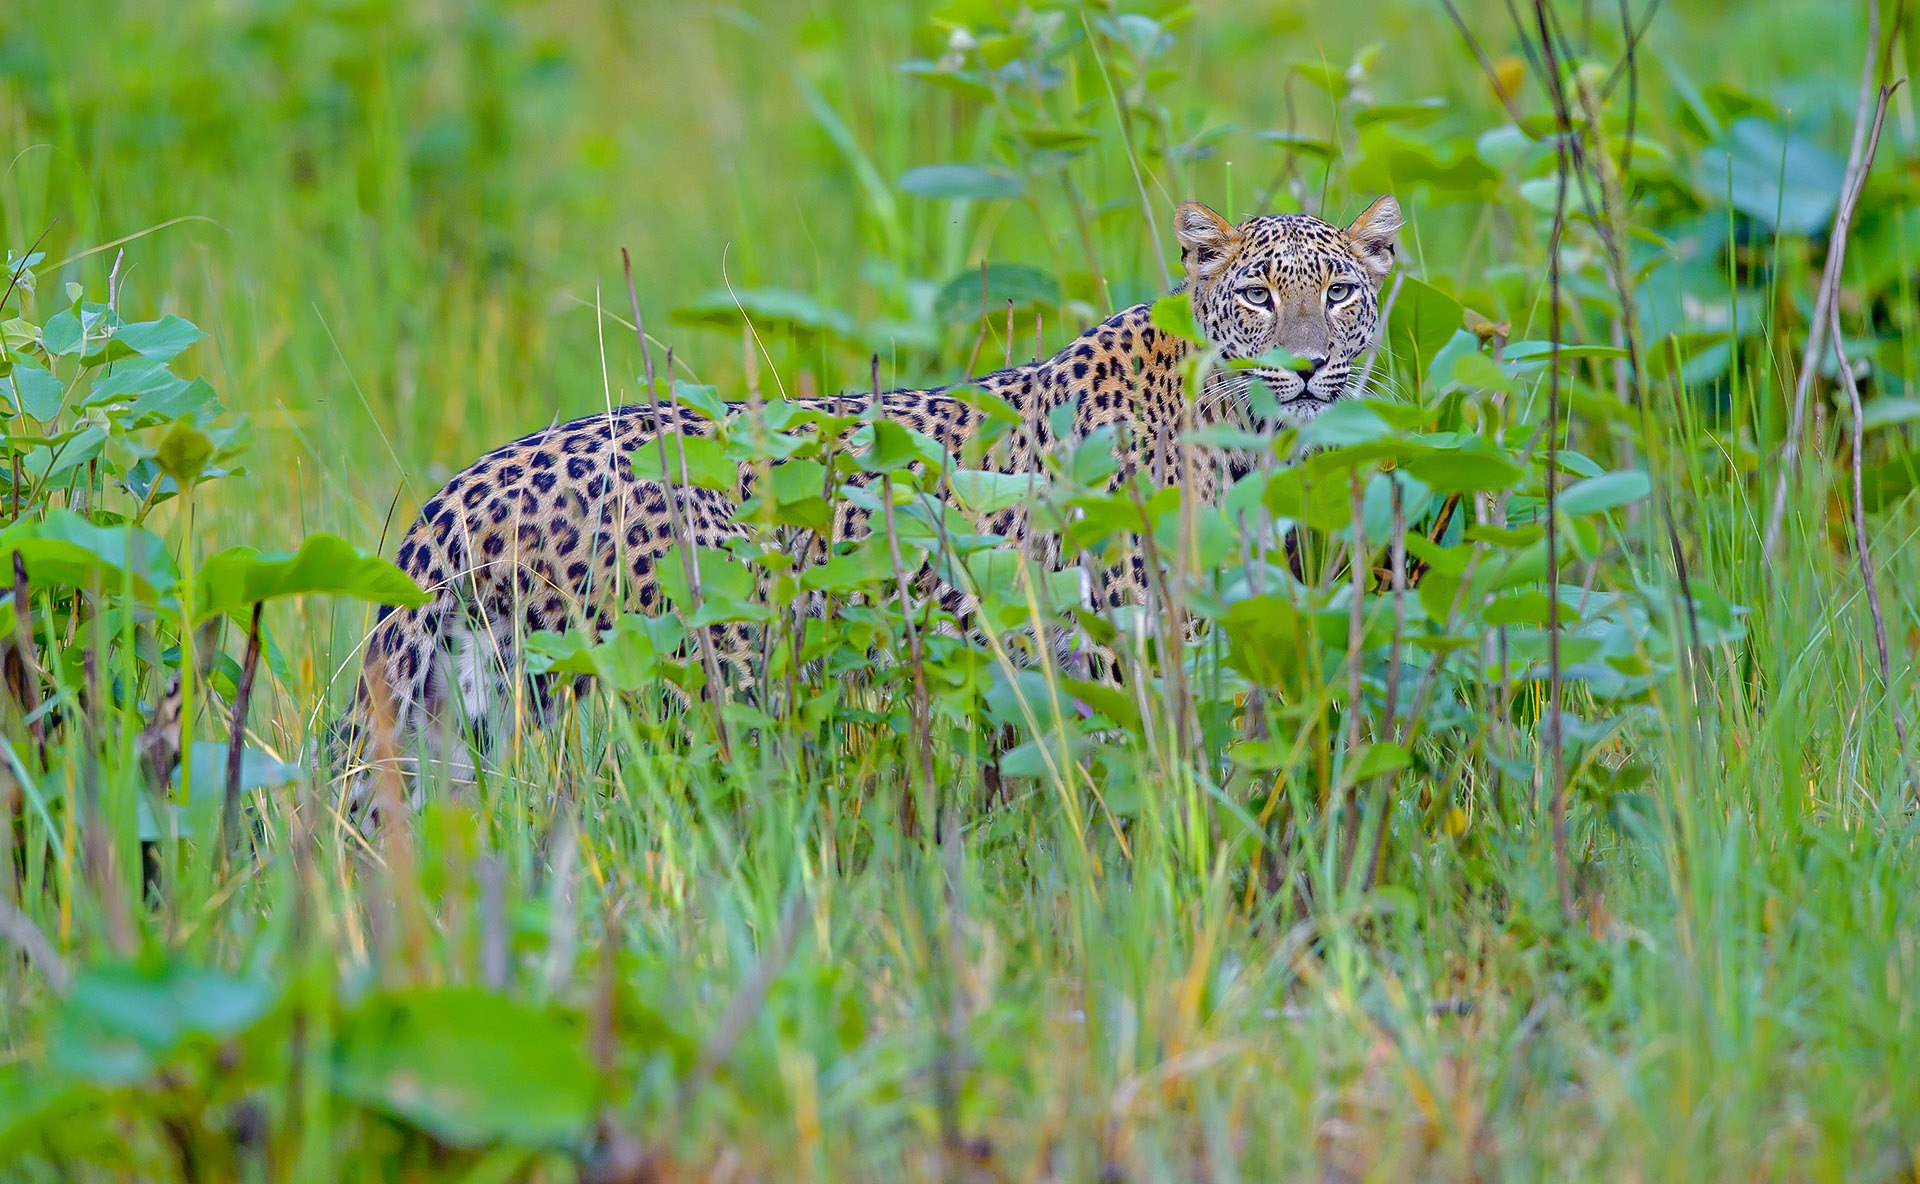 The rosette patterns on the leopard's body help it to camouflage amidst vegetation so that it can stalk, get closer to prey, and hunt successfully.  This photo was taken in Rajaji Tiger Reserve, in Uttarakhand. Photo: Dhritiman Mukherjee